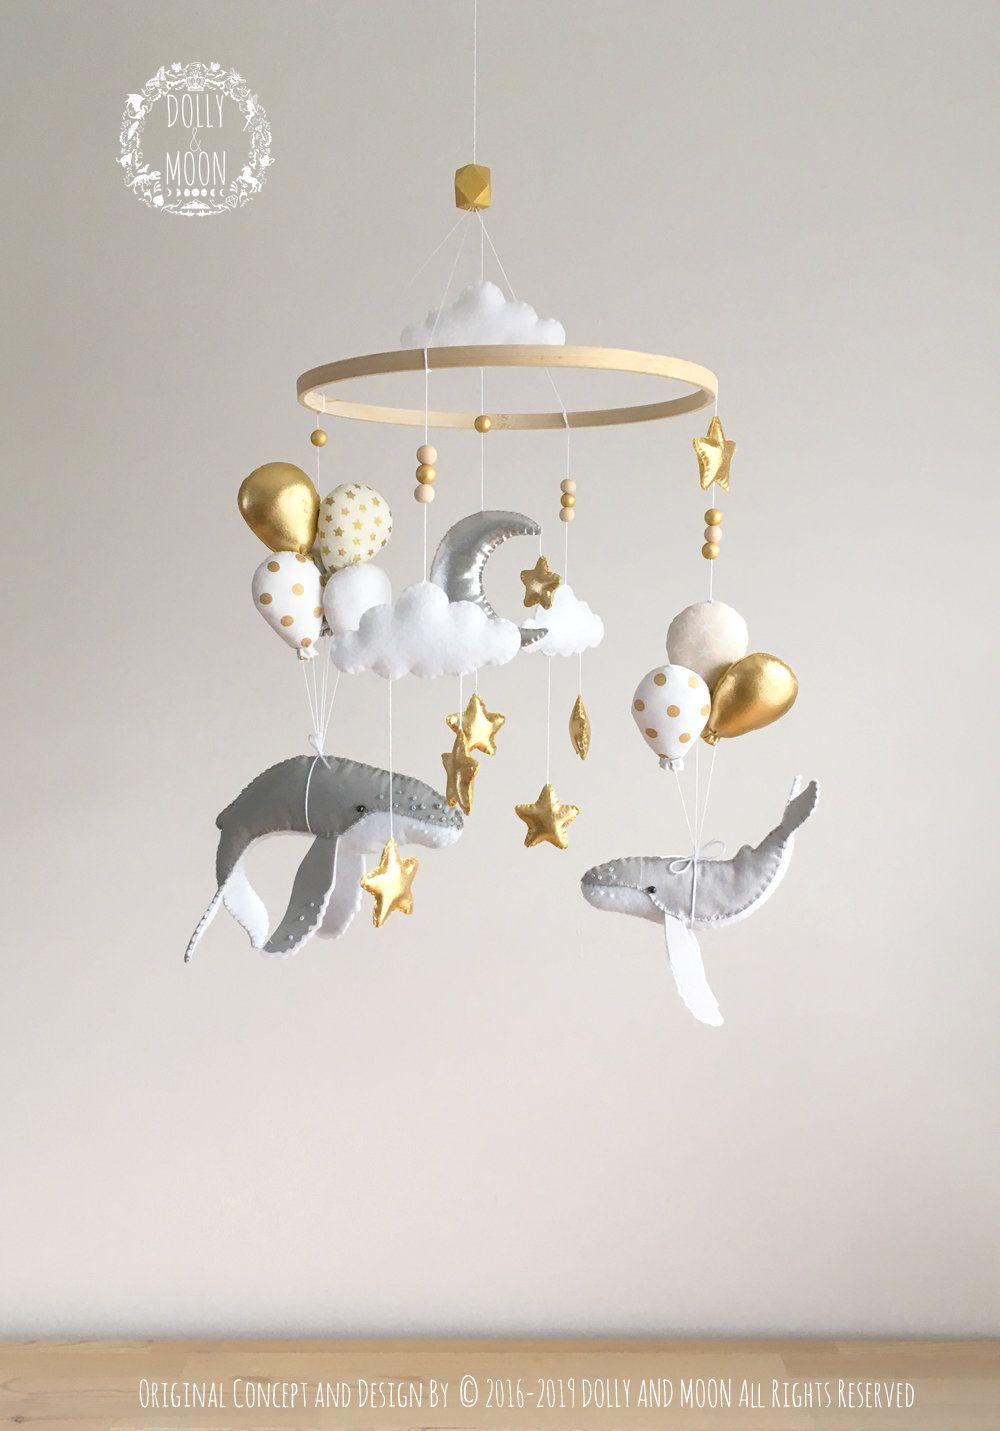 Photo of Flying Whales by Dolly and Moon